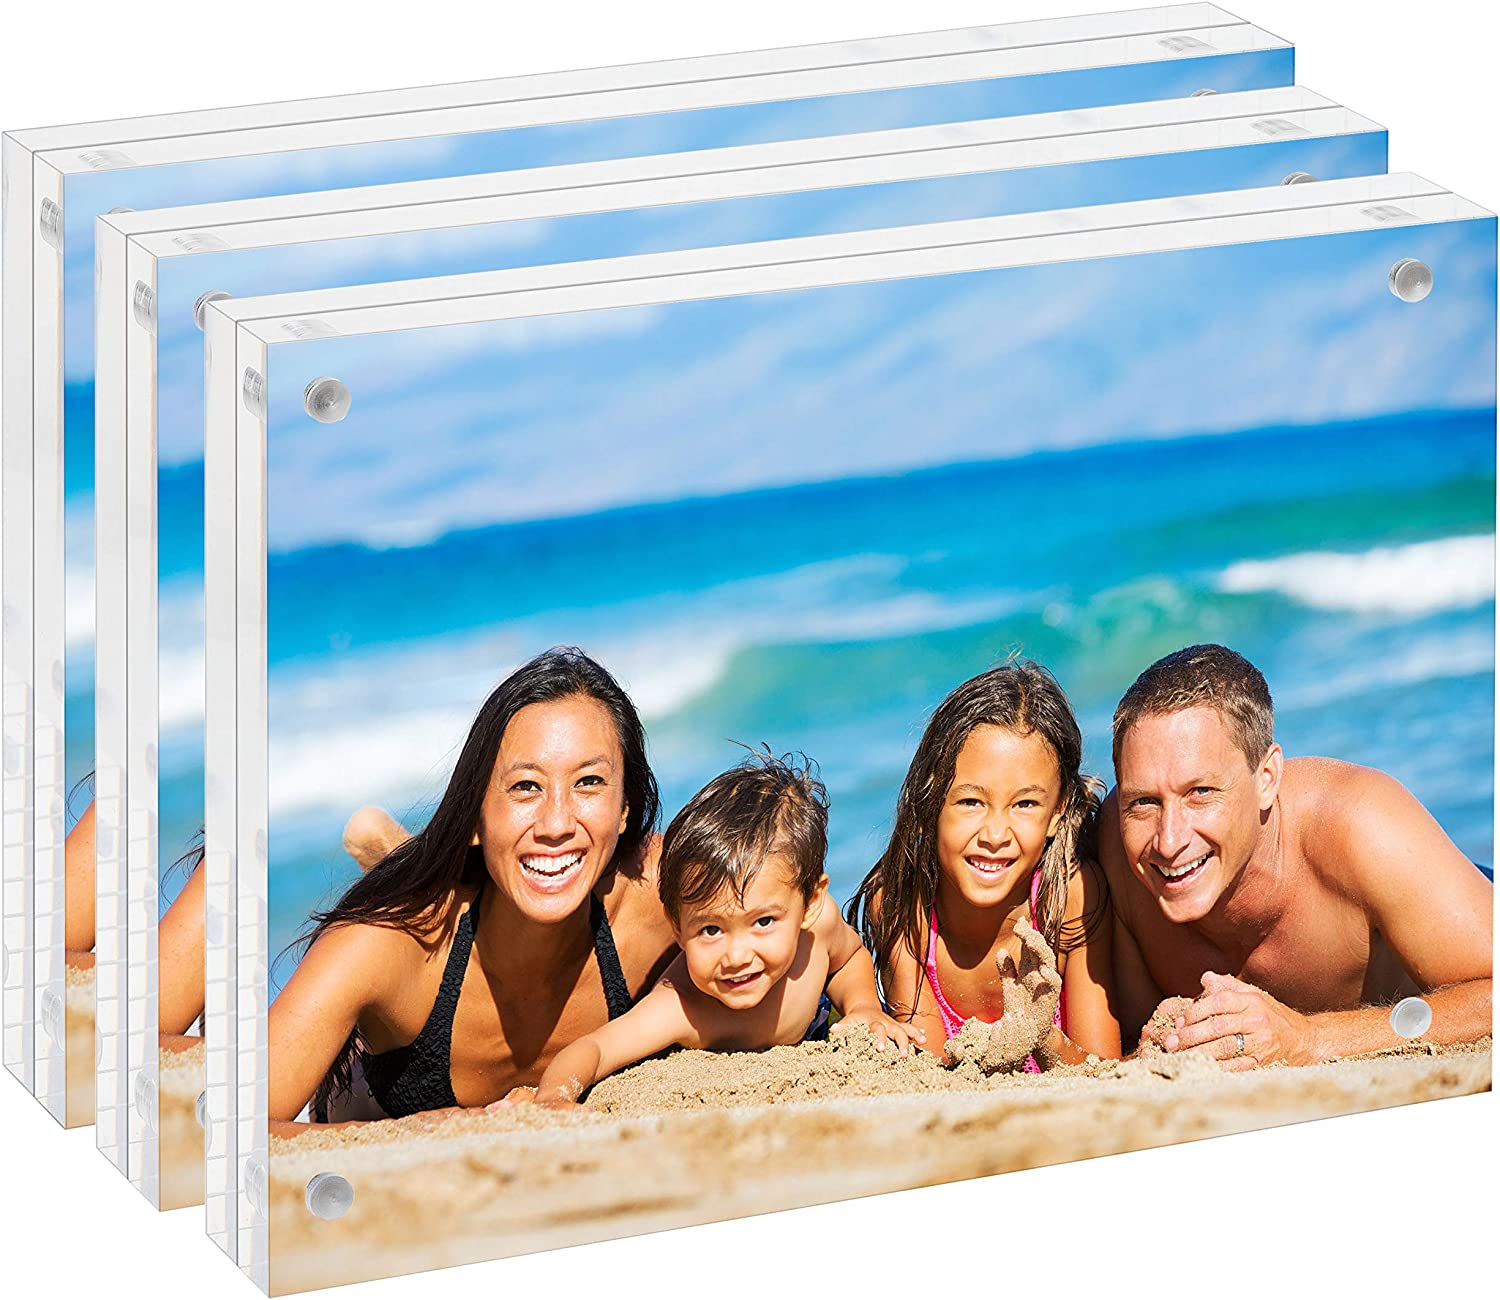 Max 70% OFF Clear Acrylic 4x6 Picture Magnetic Limited time for free shipping Floating Unum Frame: